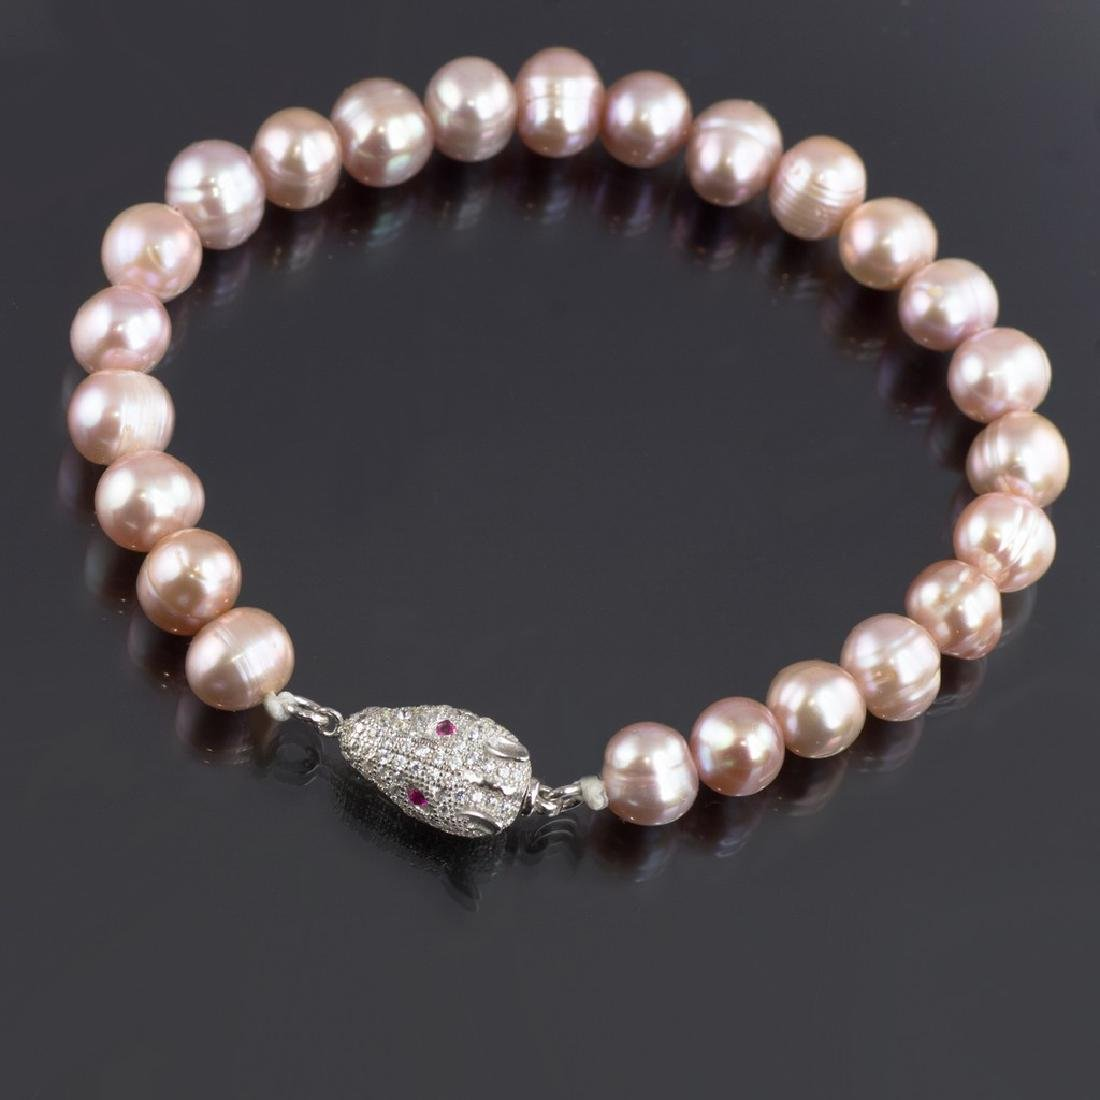 Pearl Bracelet with Silver Fancy Pave Panther Clasp - 2